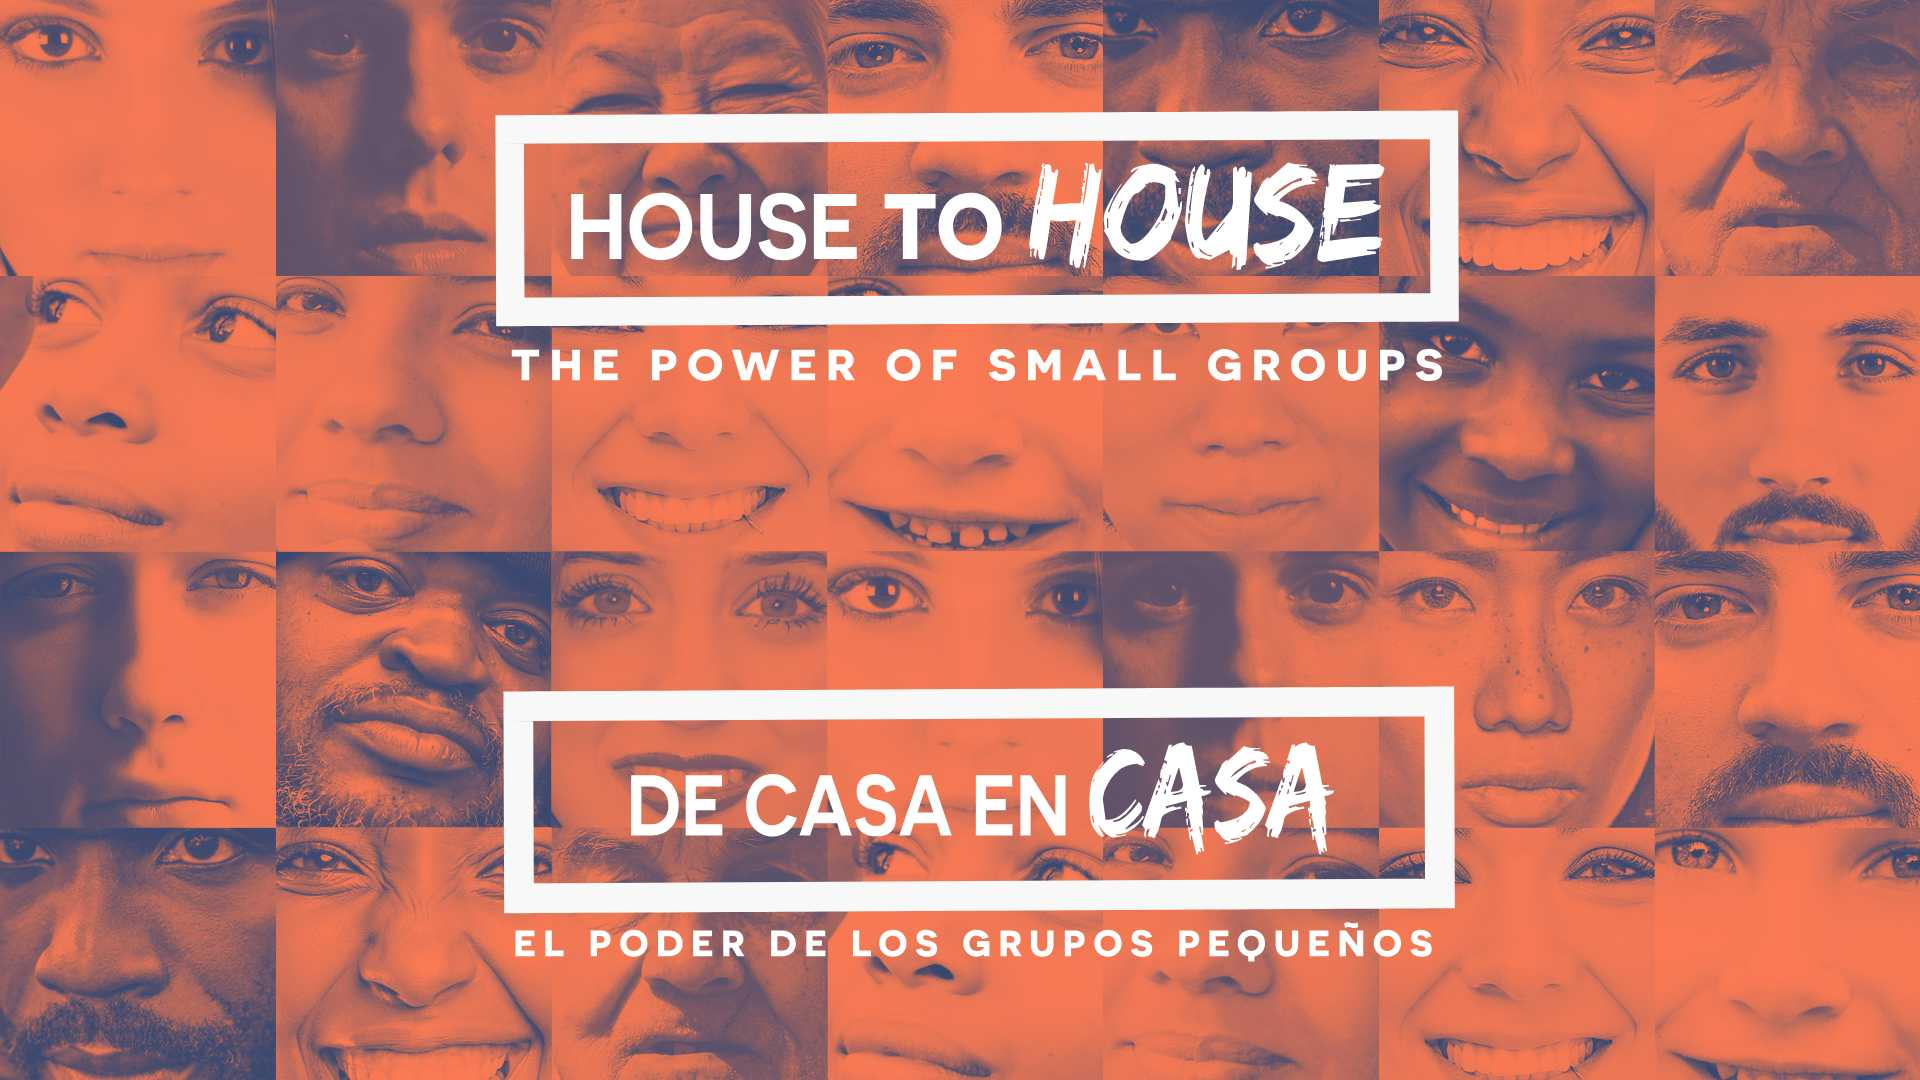 House to House: The Power of Small Groups